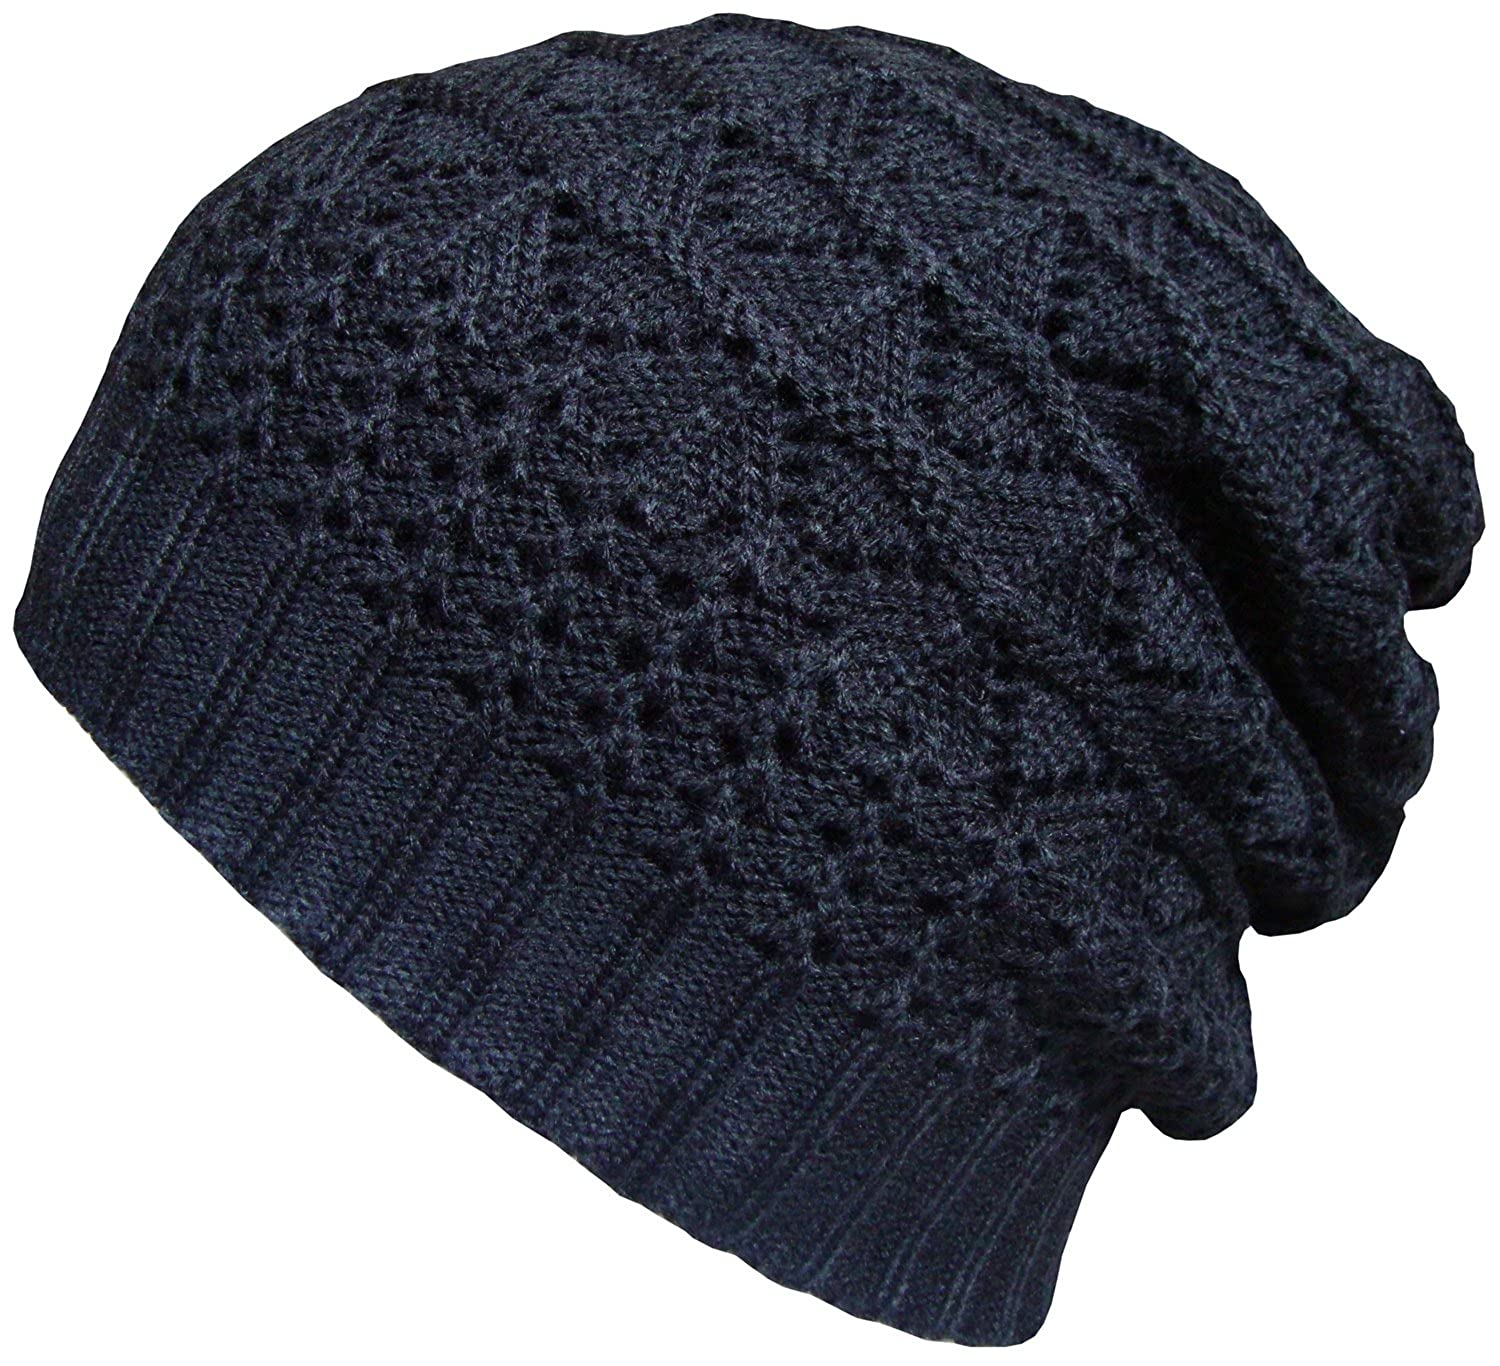 6168ee489509 Mens Womens Beanie Hat Oversize Knitted Patterned Slouch Beanies Black Wool  Cap: Amazon.co.uk: Clothing